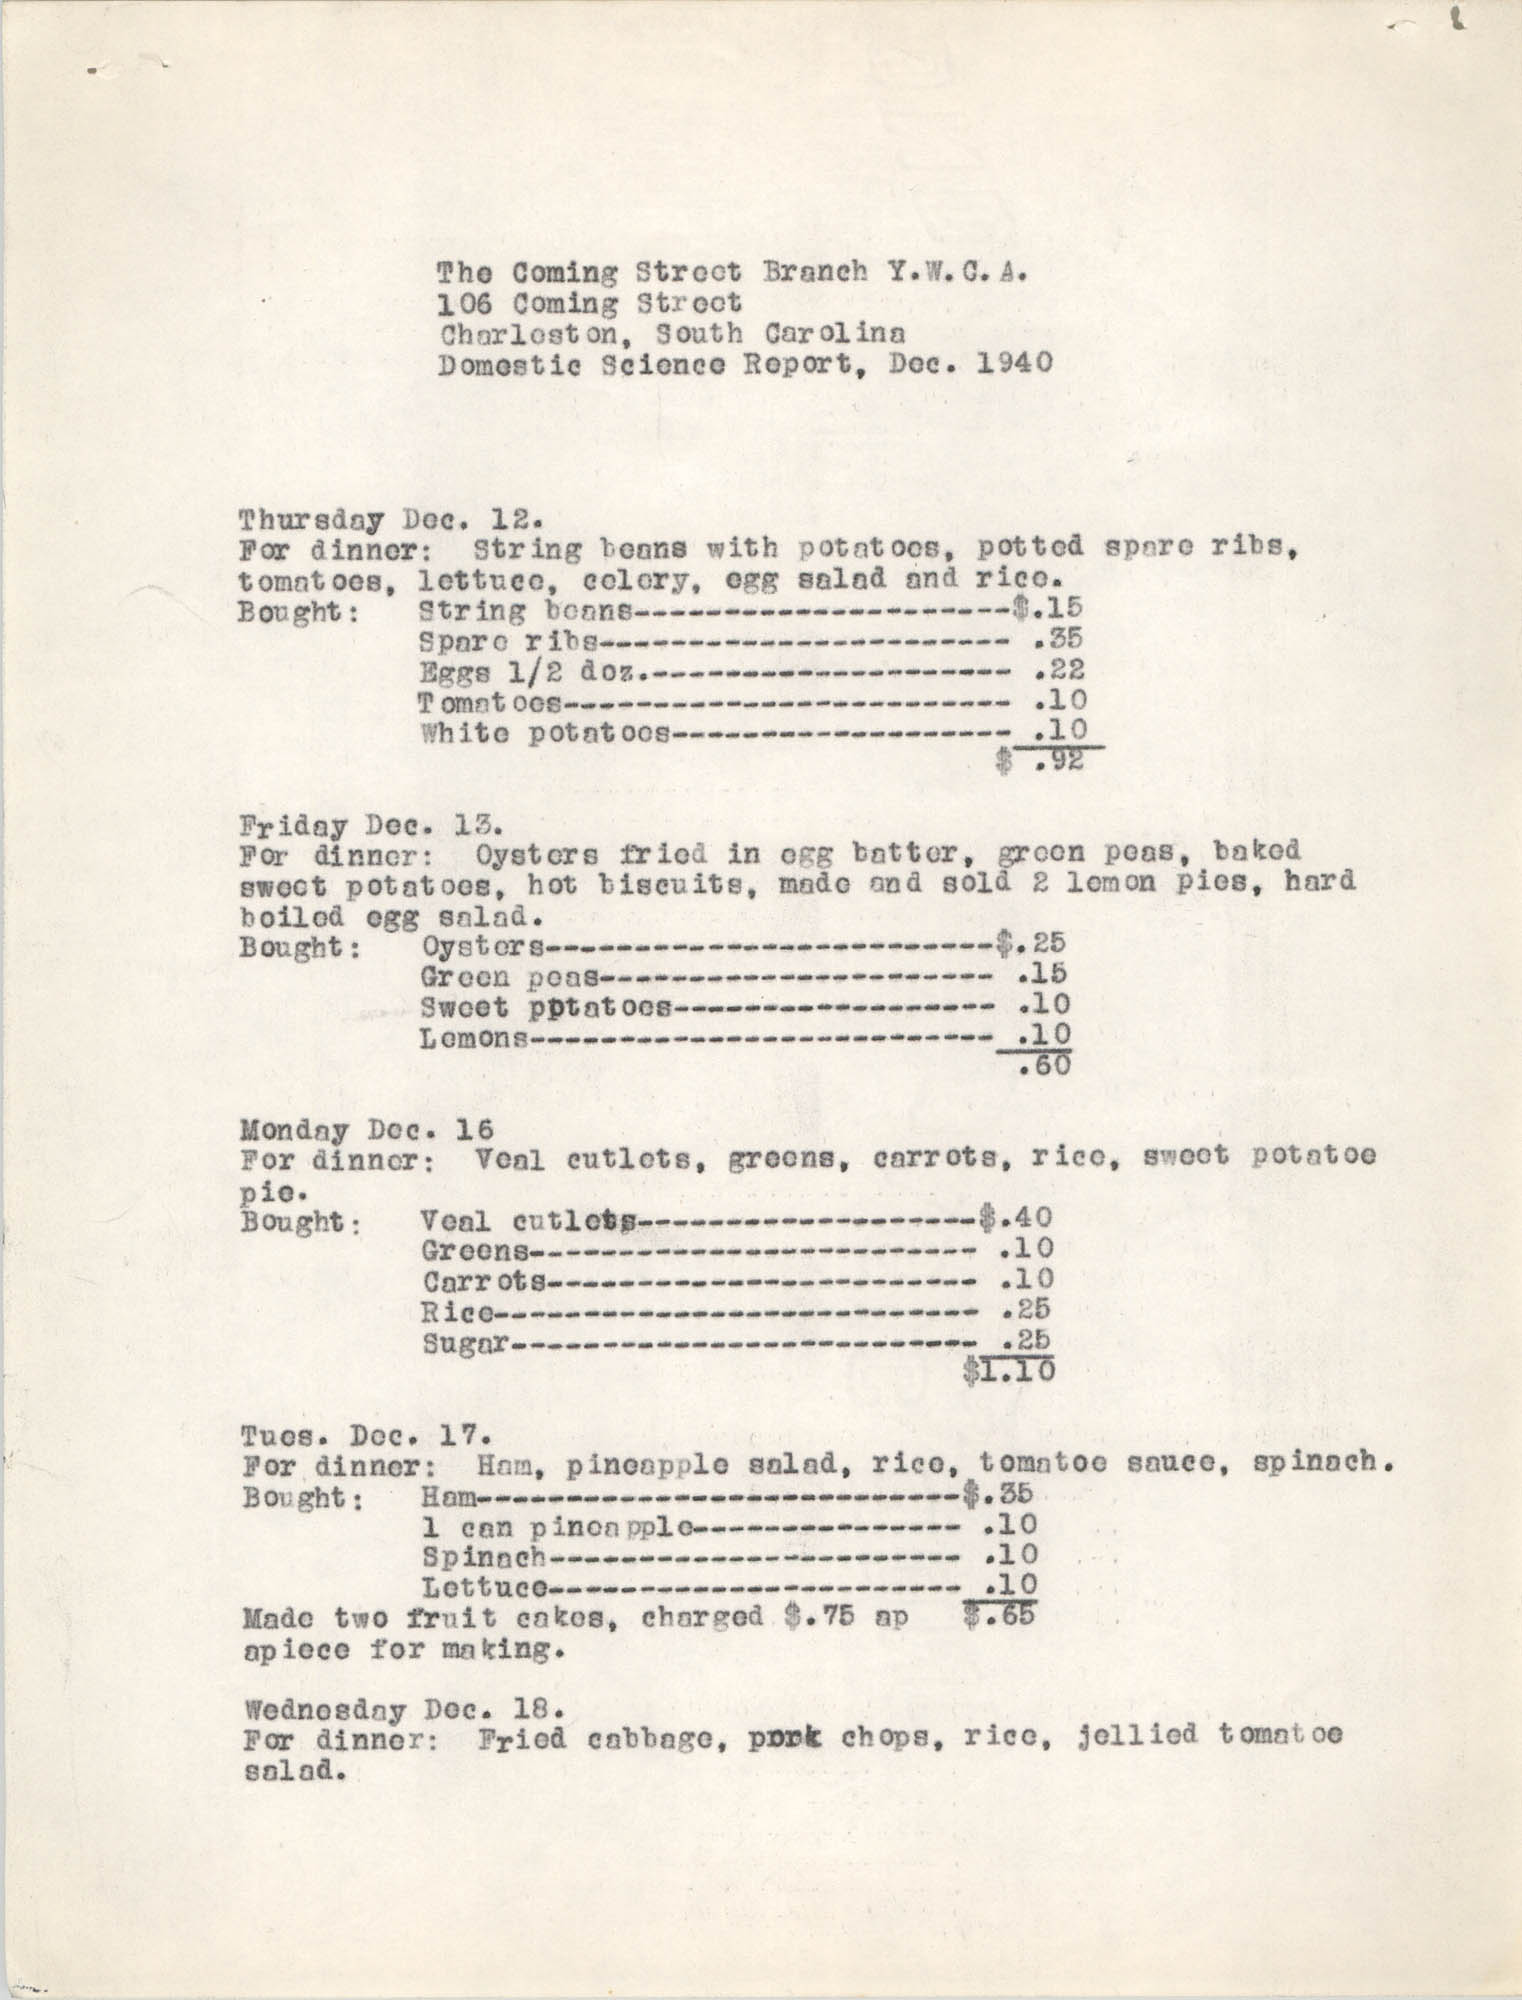 Monthly Report for the Coming Street Y.W.C.A., Domestic Science School, September 1940, Page 3